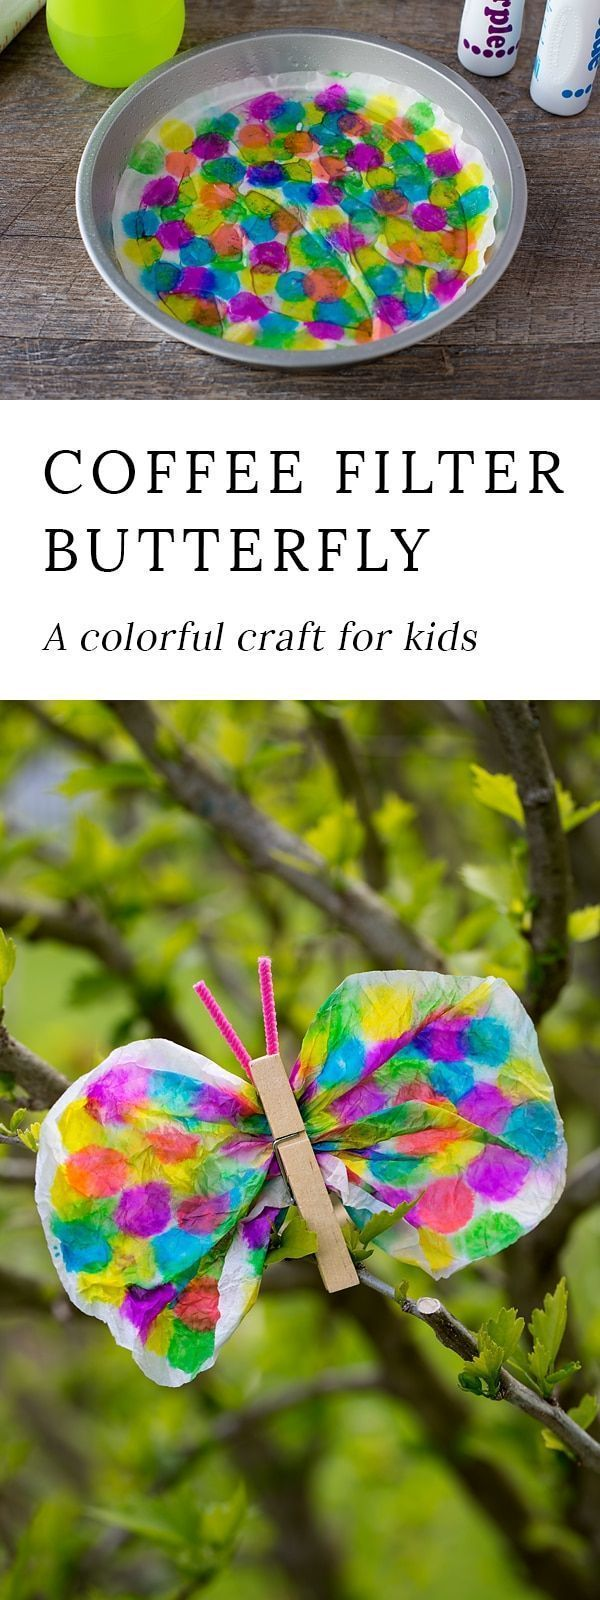 Not only is this Coffee Filter Butterfly Craft lovely, but it is packed with fine-motor skills. Dabbing, squeezing, scrunching,